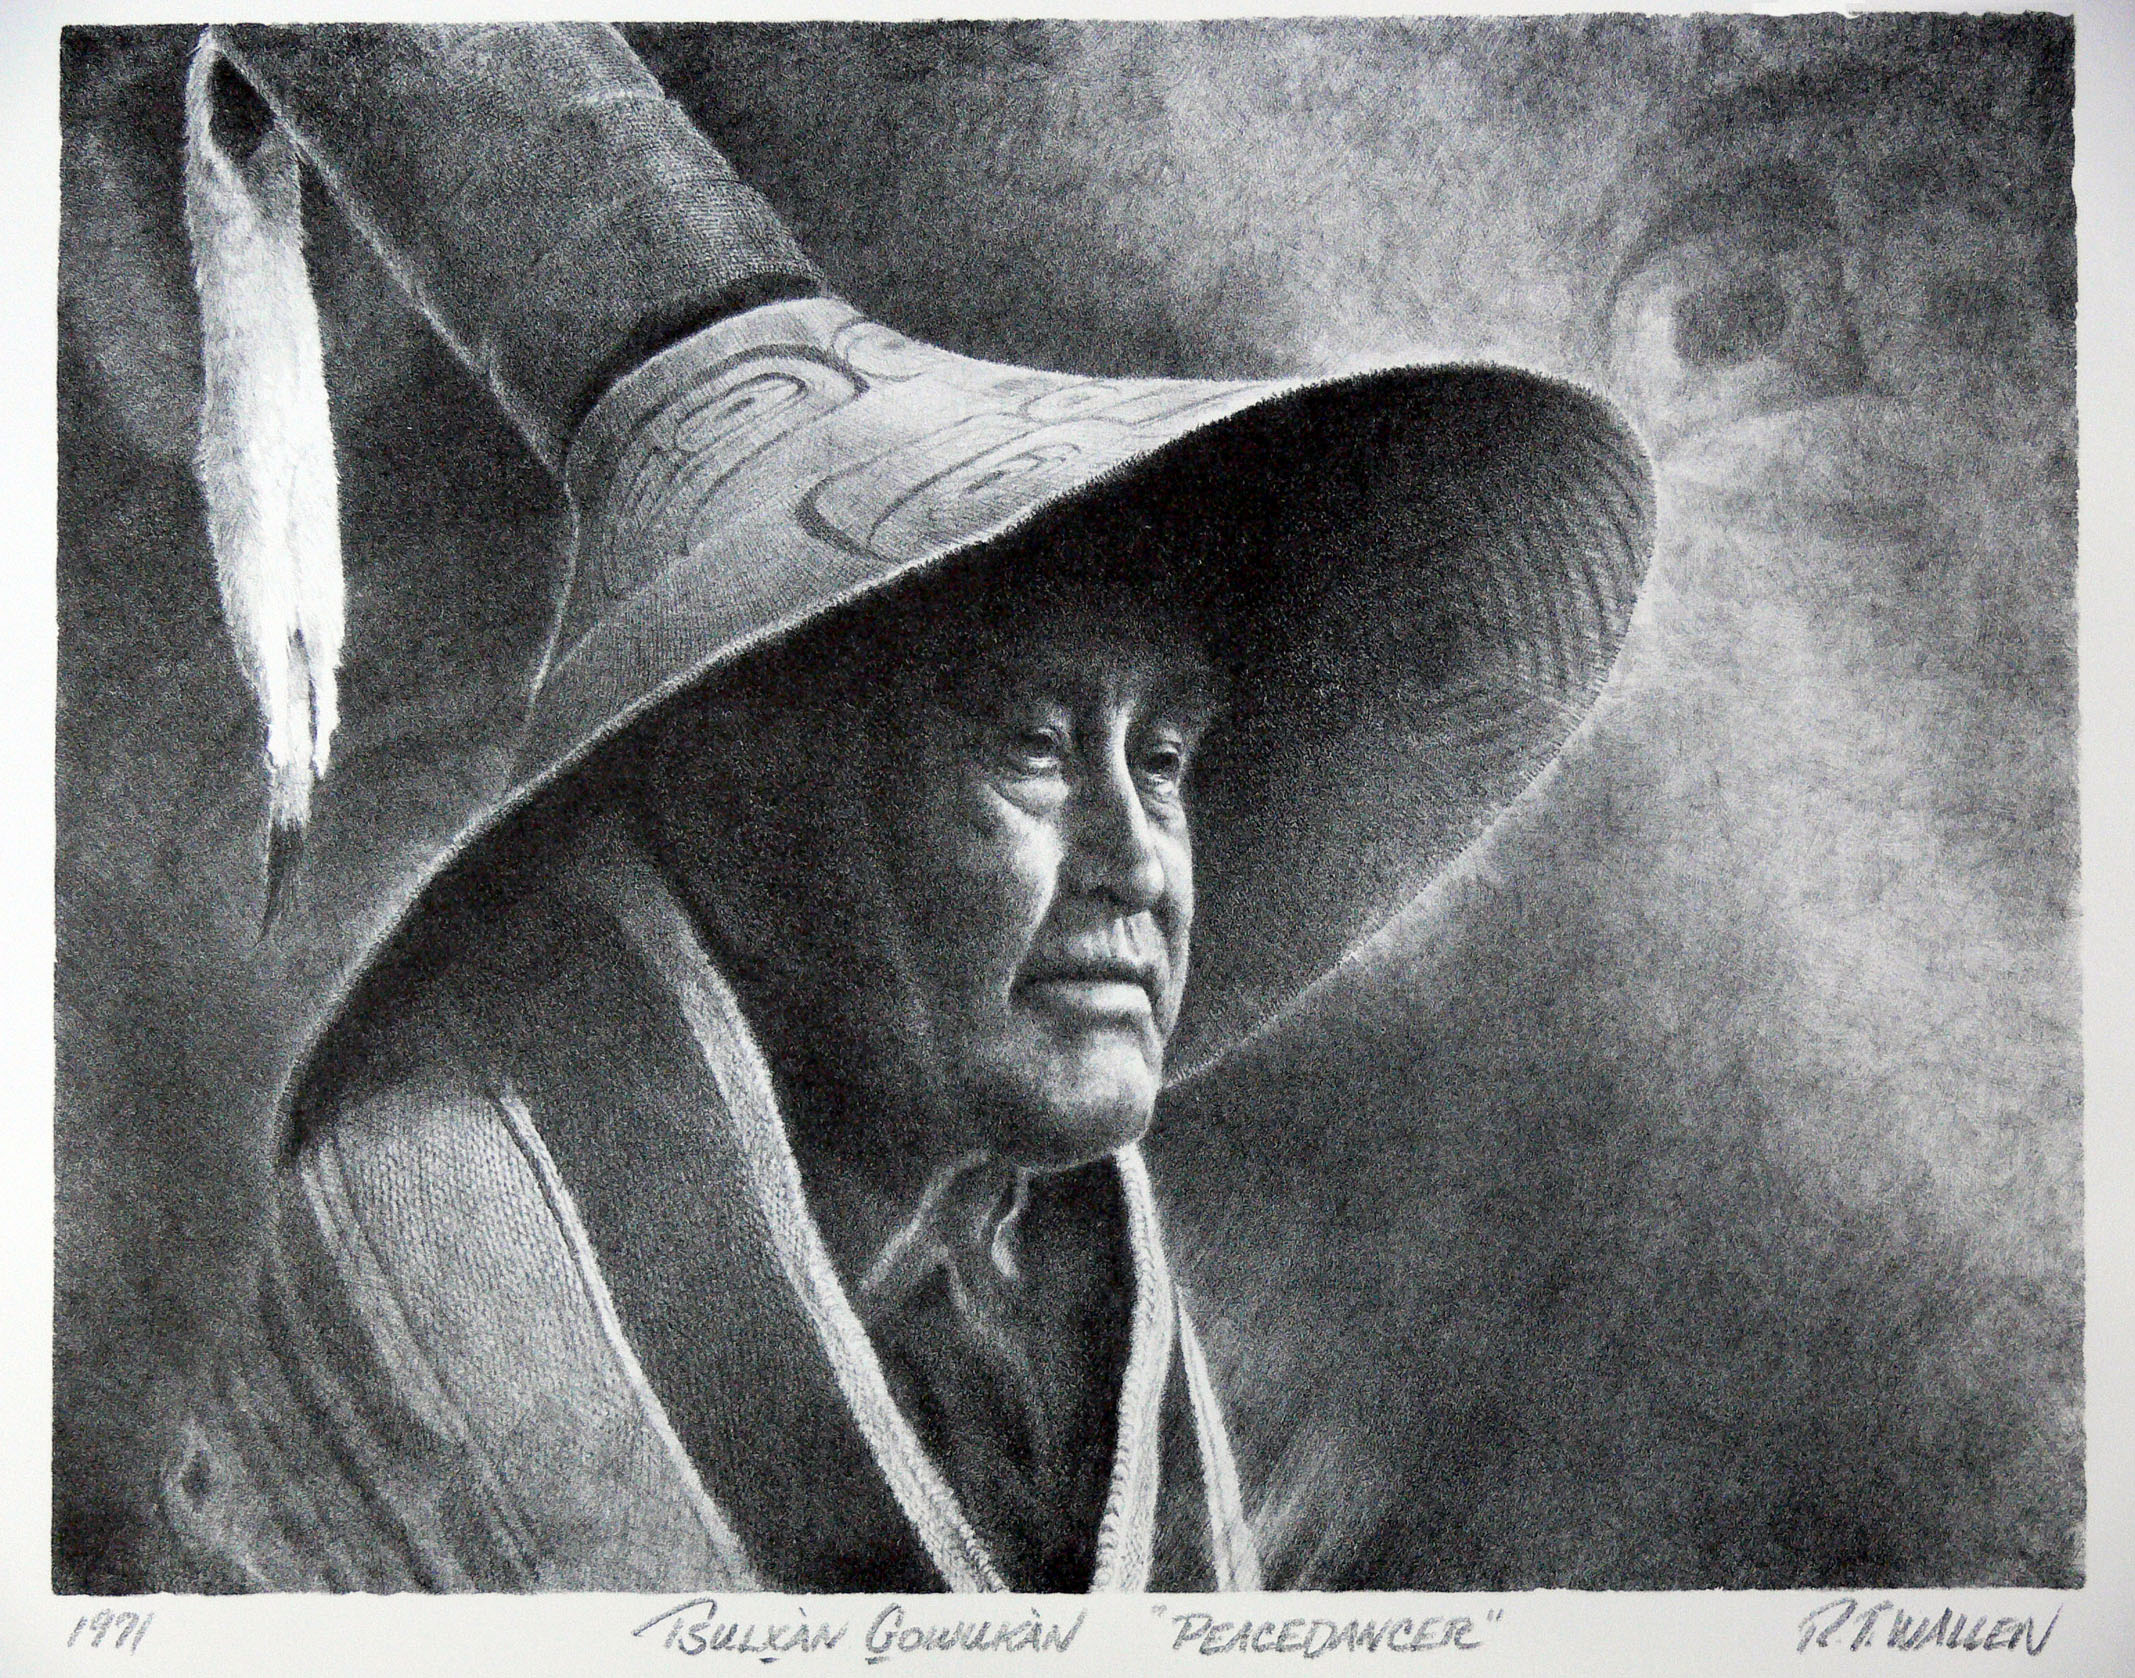 Peace dancer, a portrait of a Tlingit man, stone lithograph by R.T. Wallen